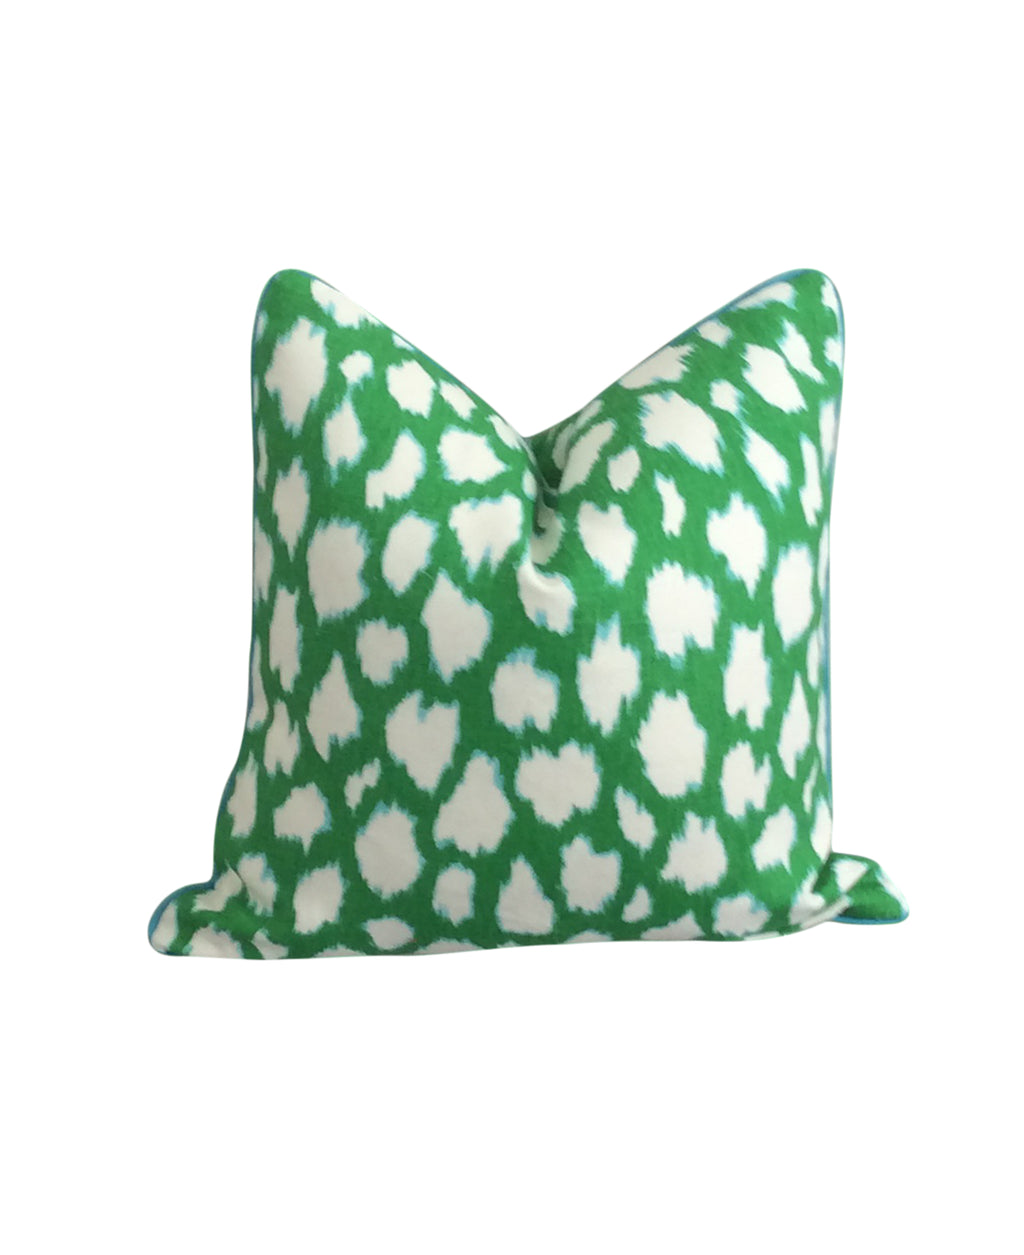 Kade Spade Leokat Kelly Green Fabric decorative throw pillow by Lilly and Co.